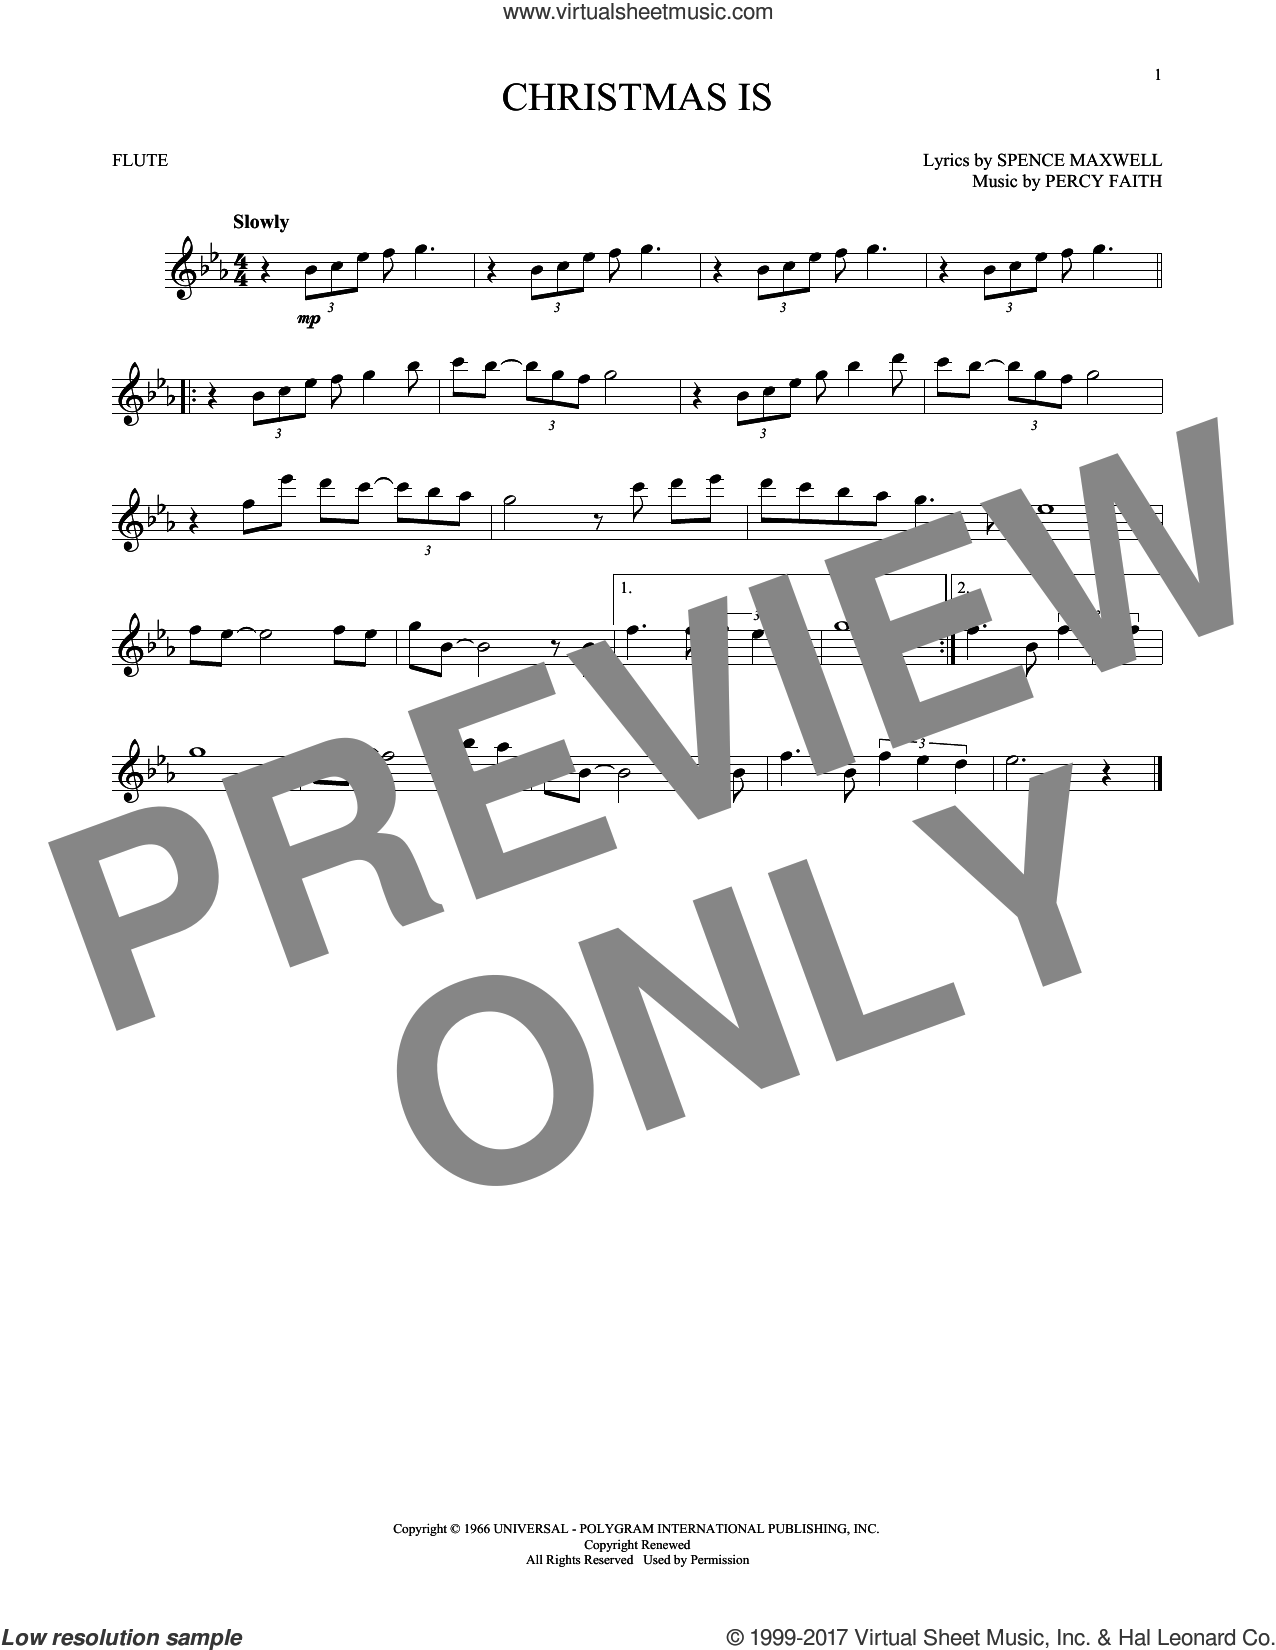 Christmas Is sheet music for flute solo by Percy Faith and Spence Maxwell, intermediate